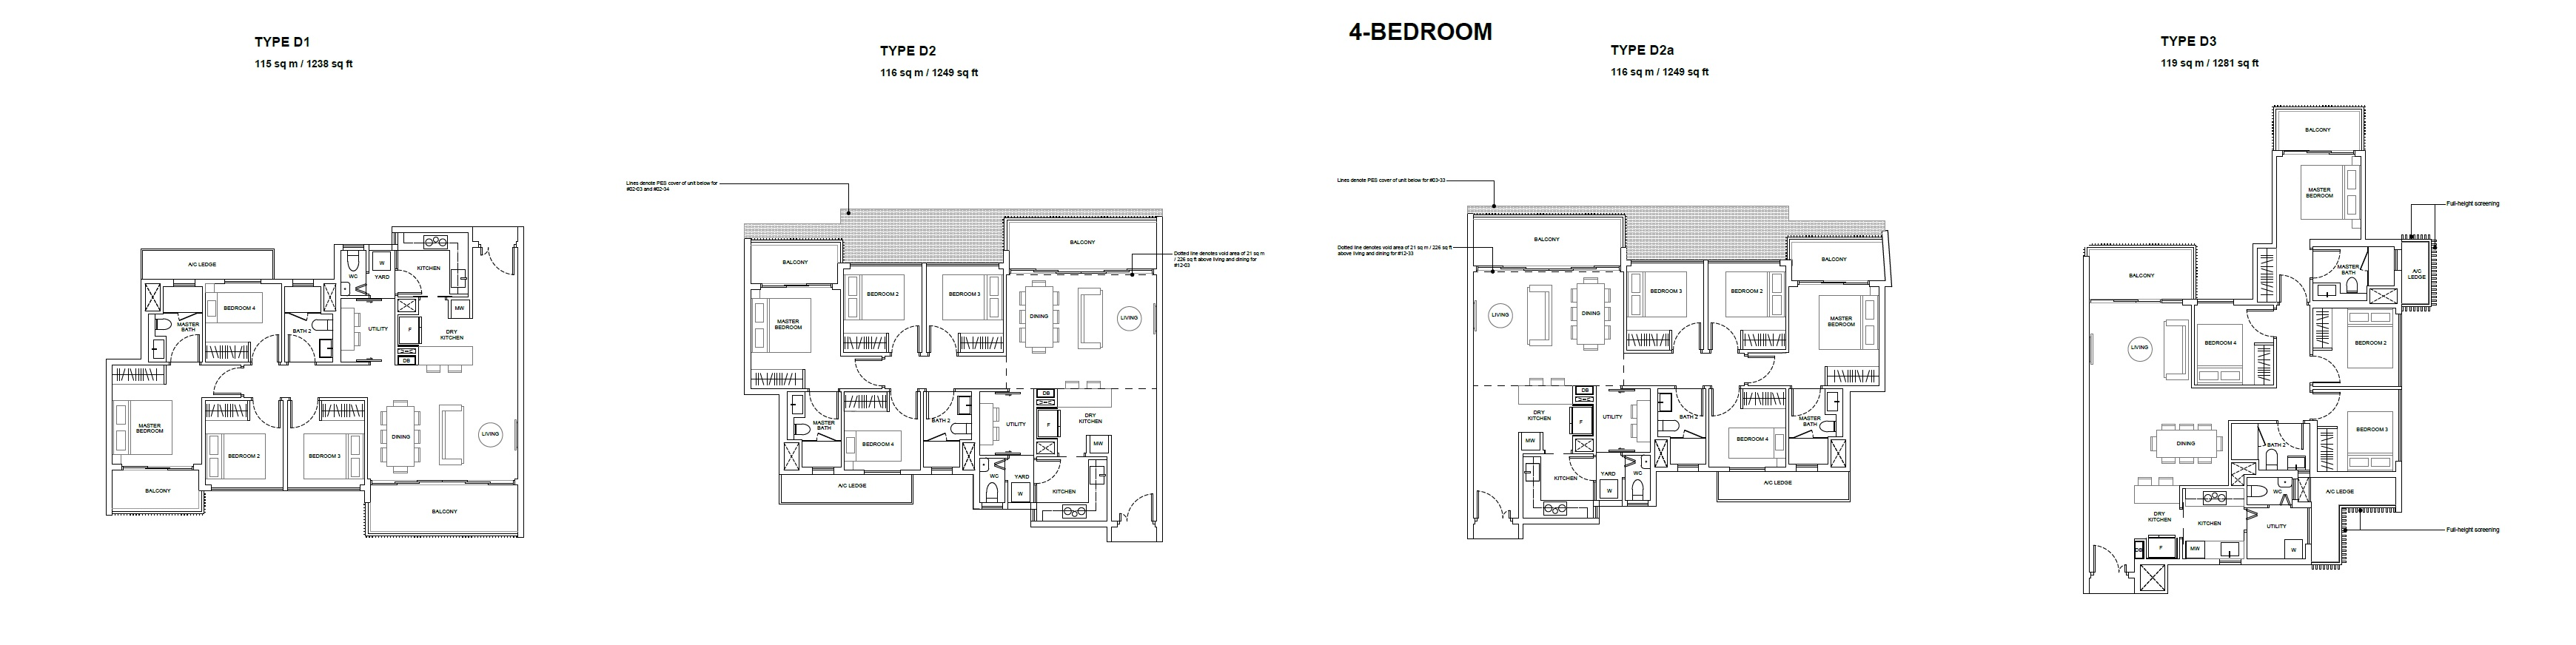 forest woods floor plan for four bedroom